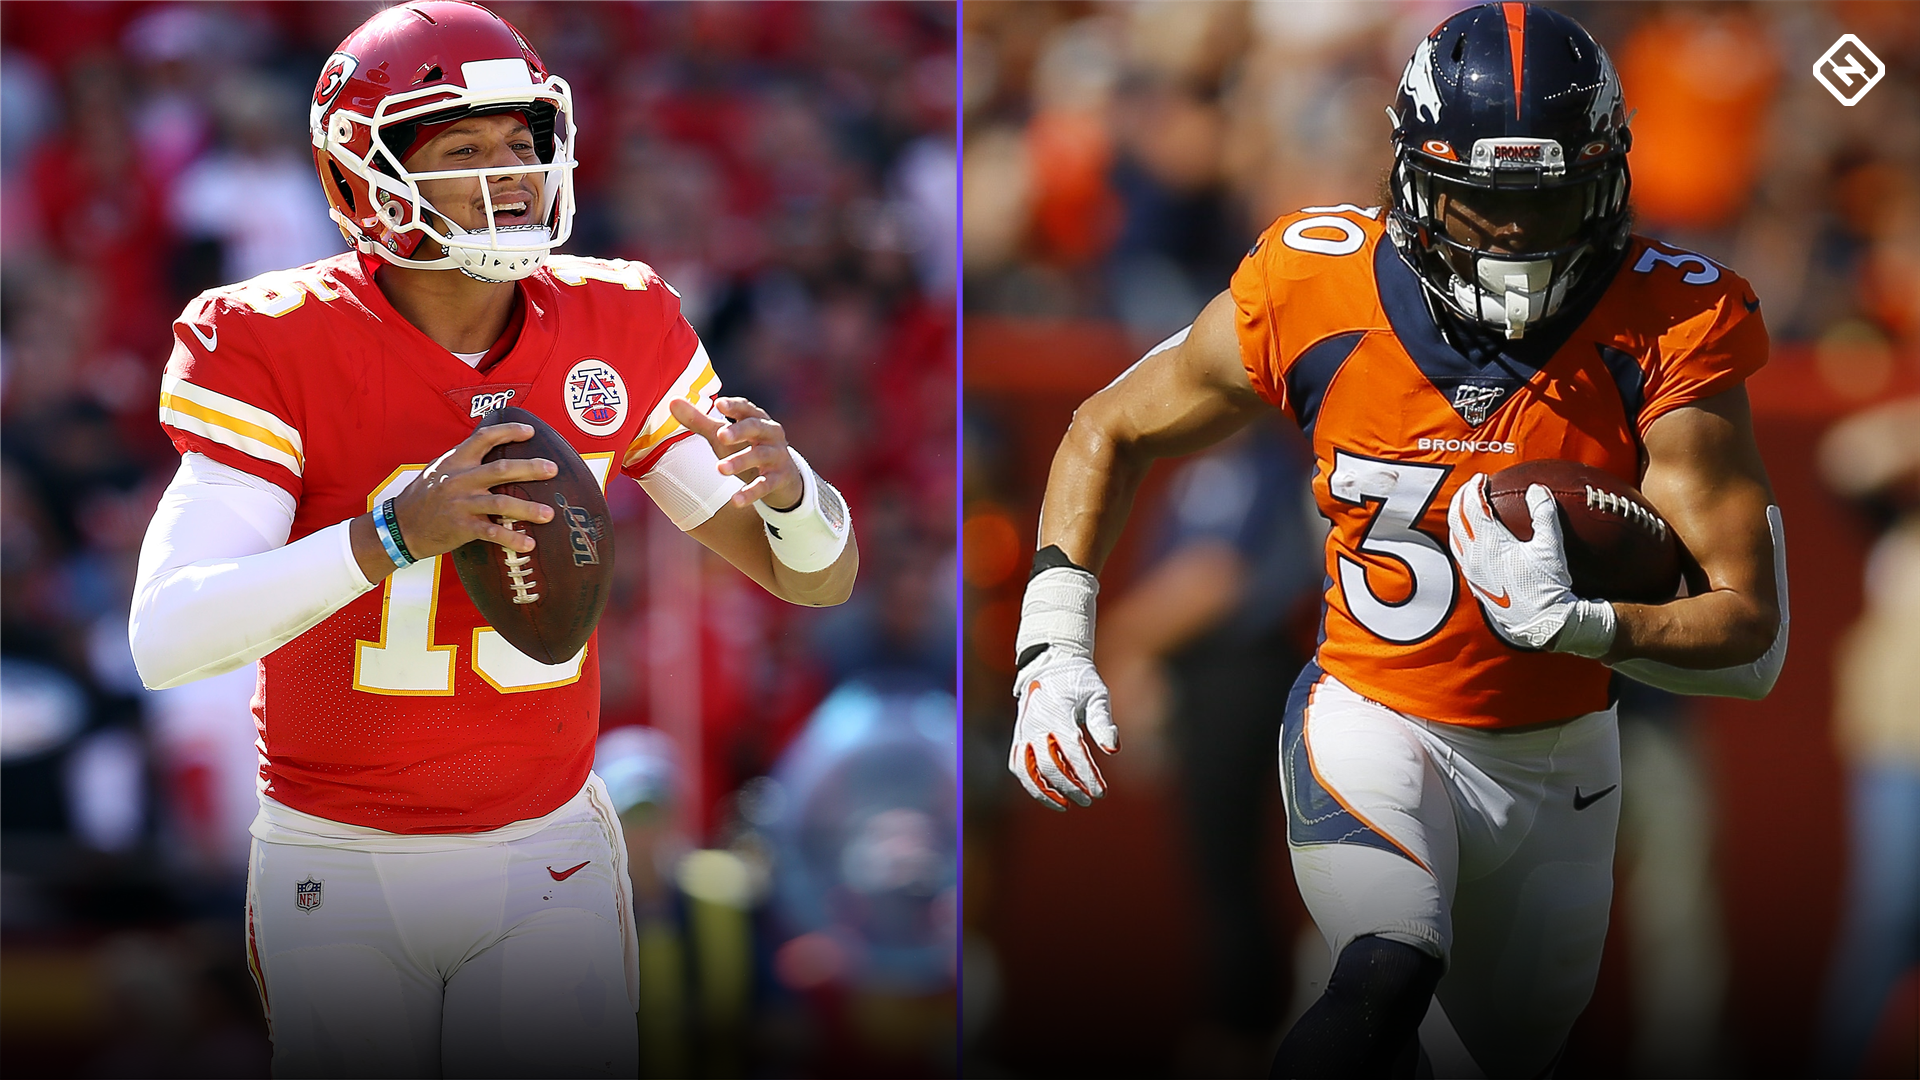 Broncos chiefs betting preview nfl best crypto exchange for sports betting